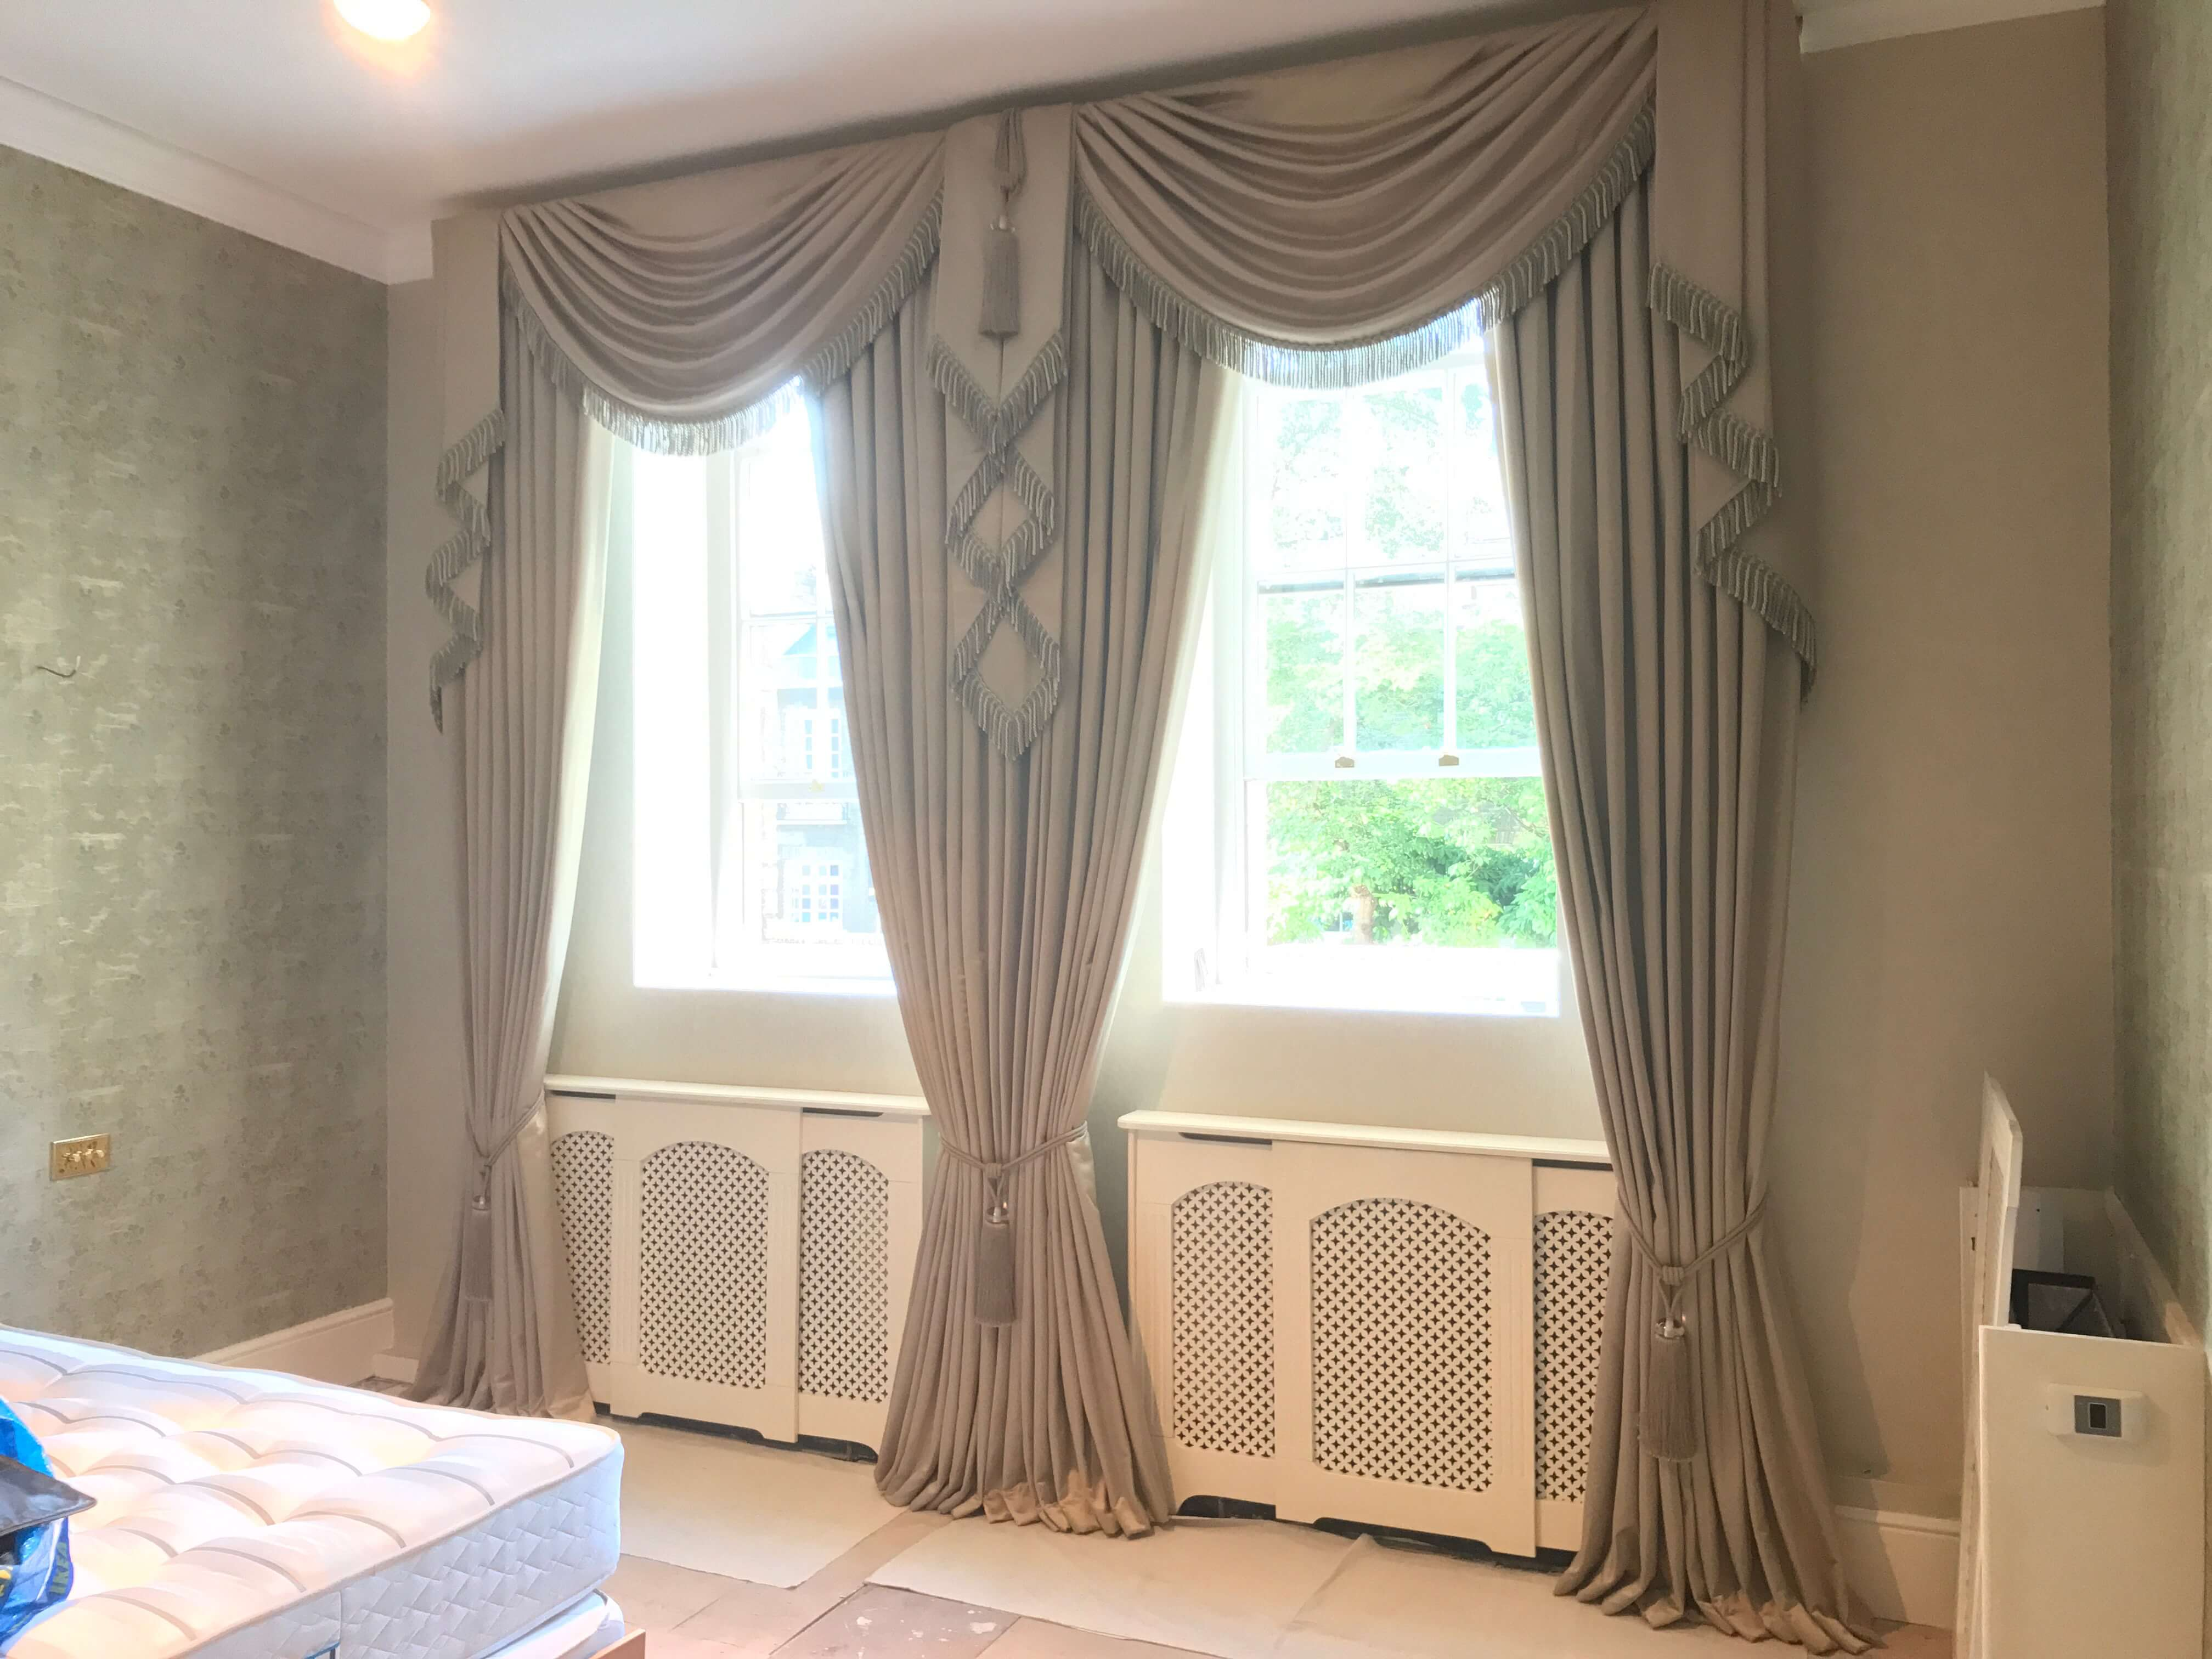 Bespoke drapes with swags and tiebacks in gold